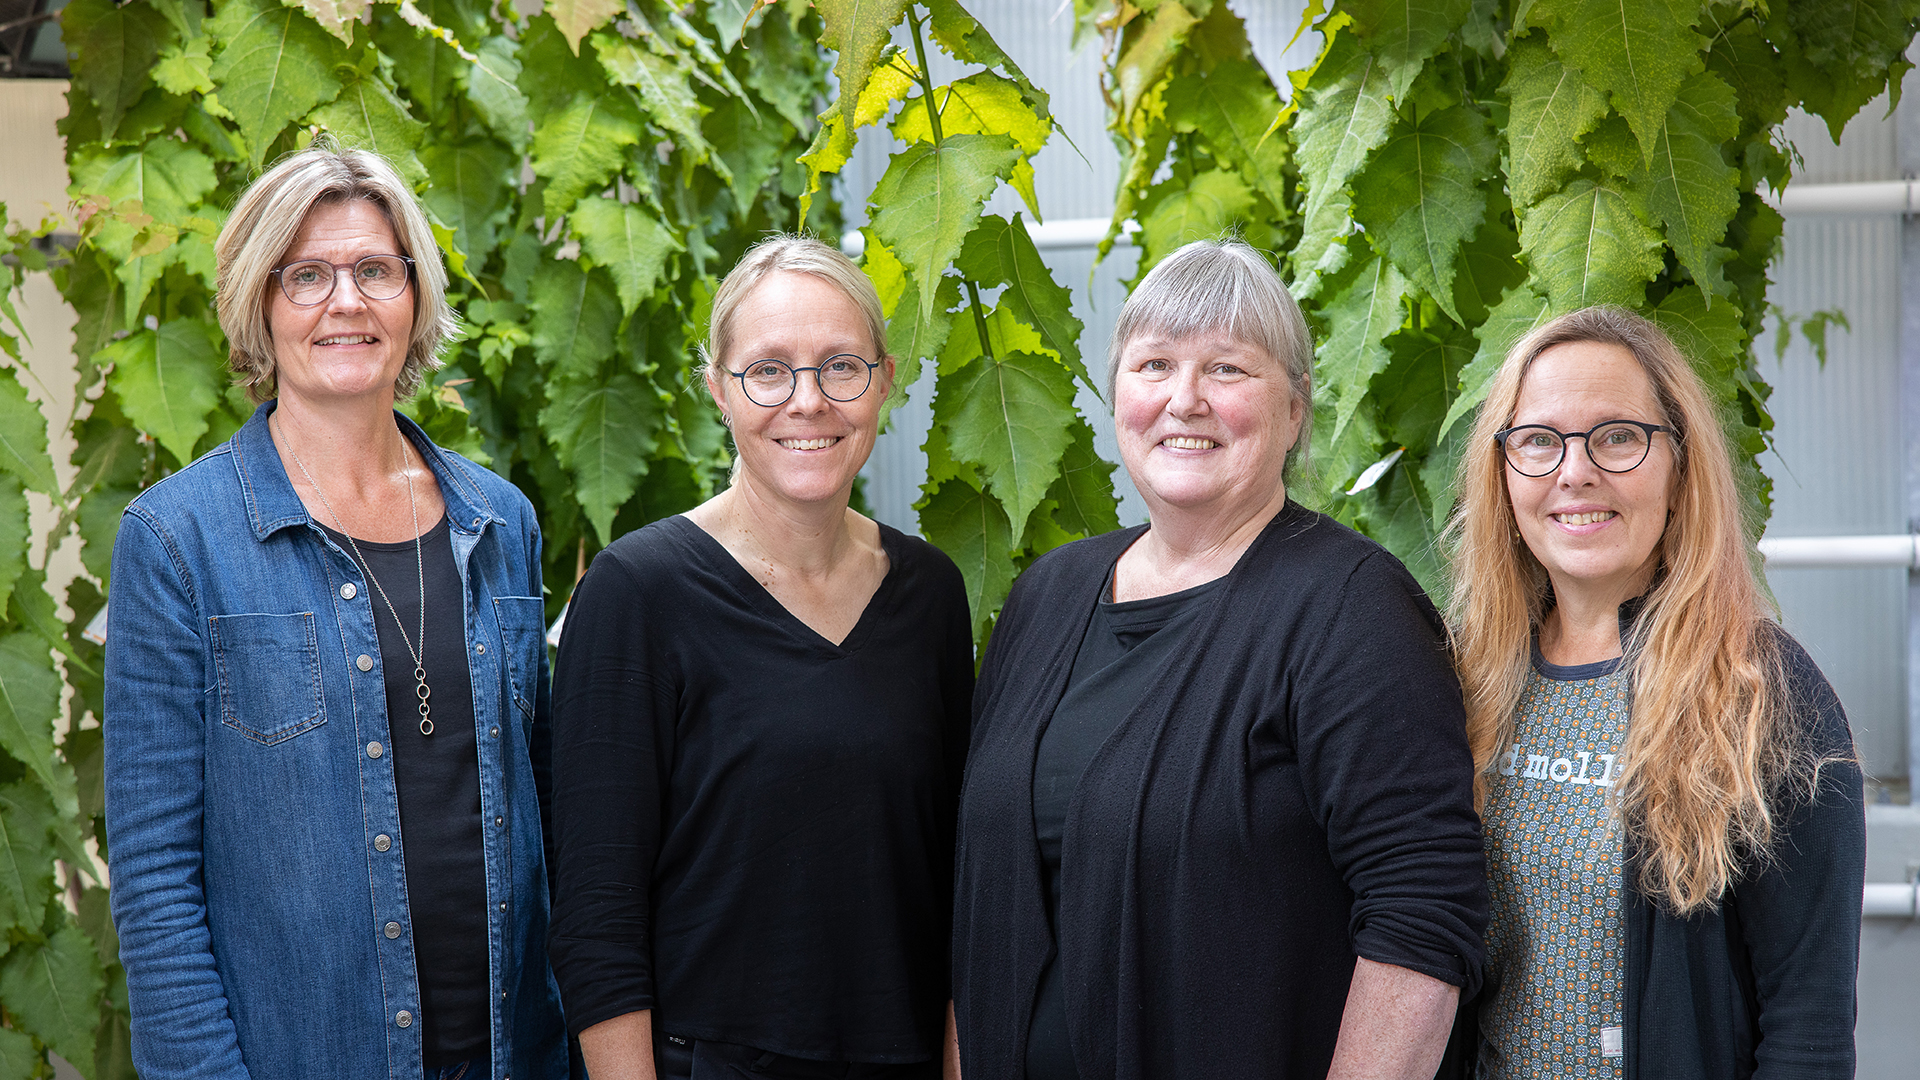 Greenhouse personnel - from left to right: Åsa Gavelin, Anna Brännström, Ann Sehlstedt, Anna Forsgren (photo taken by Fredrik Larsson)